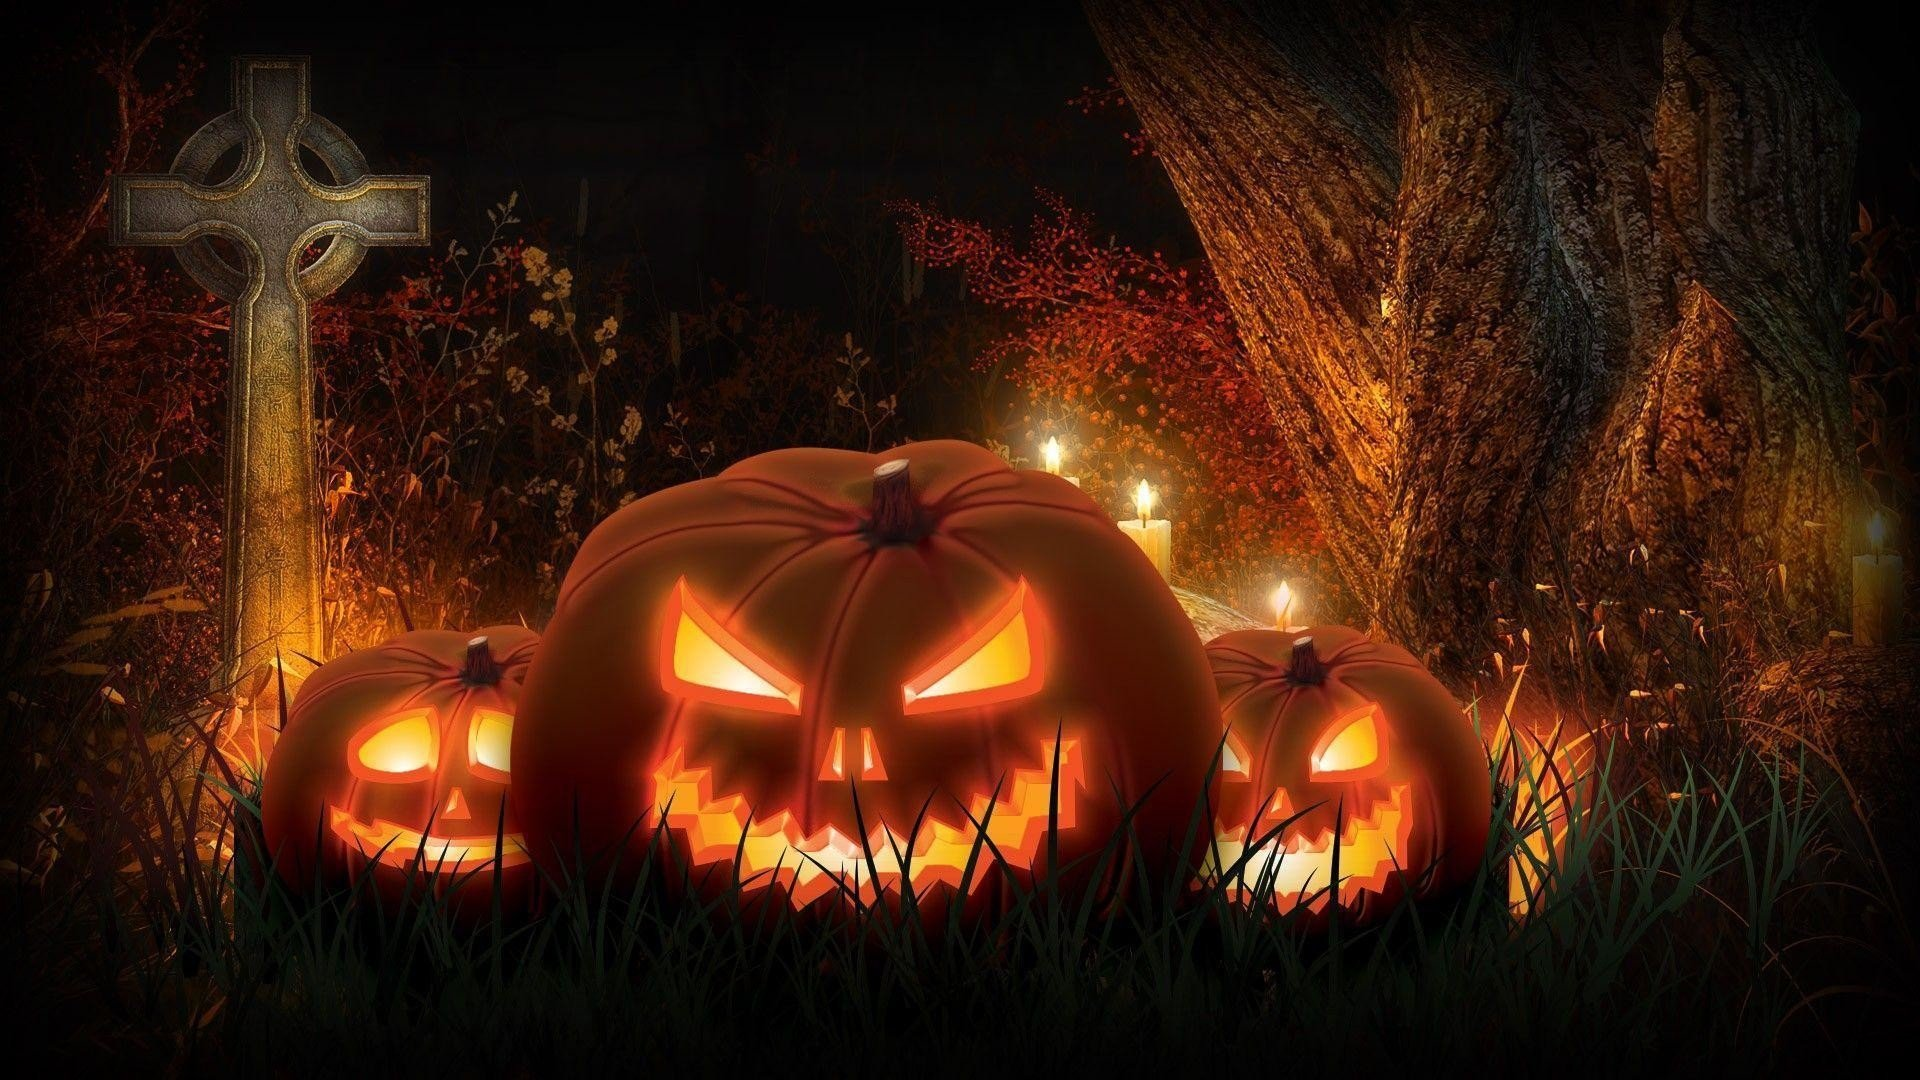 HD Halloween Wallpapers 1080p 77 images 1920x1080